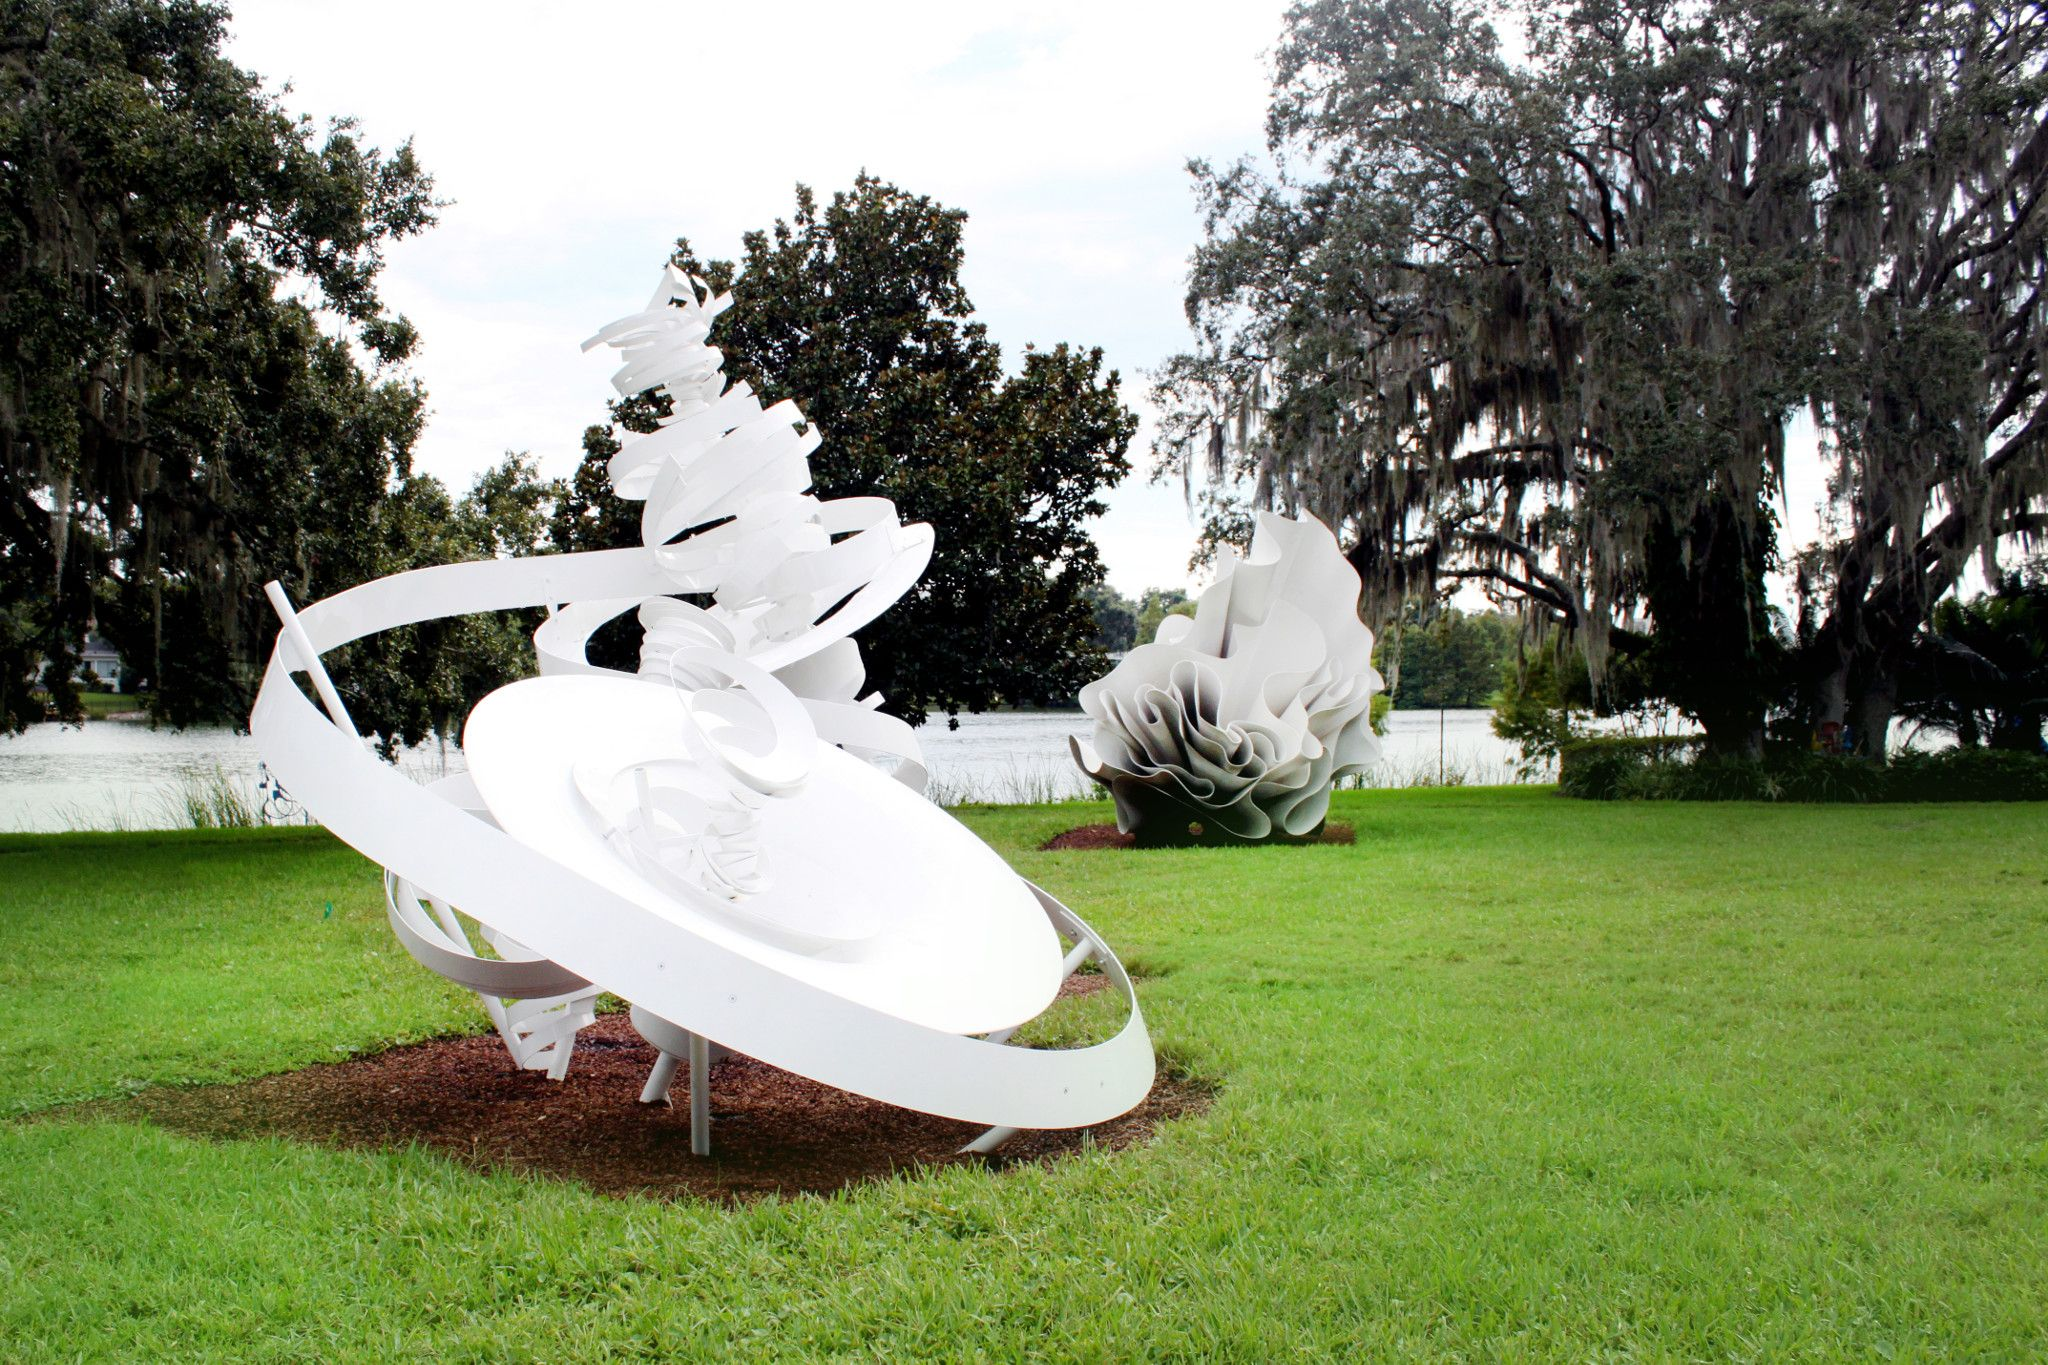 Giant white sculptures at The Monello Museum of American Art in Orlando, Florida.